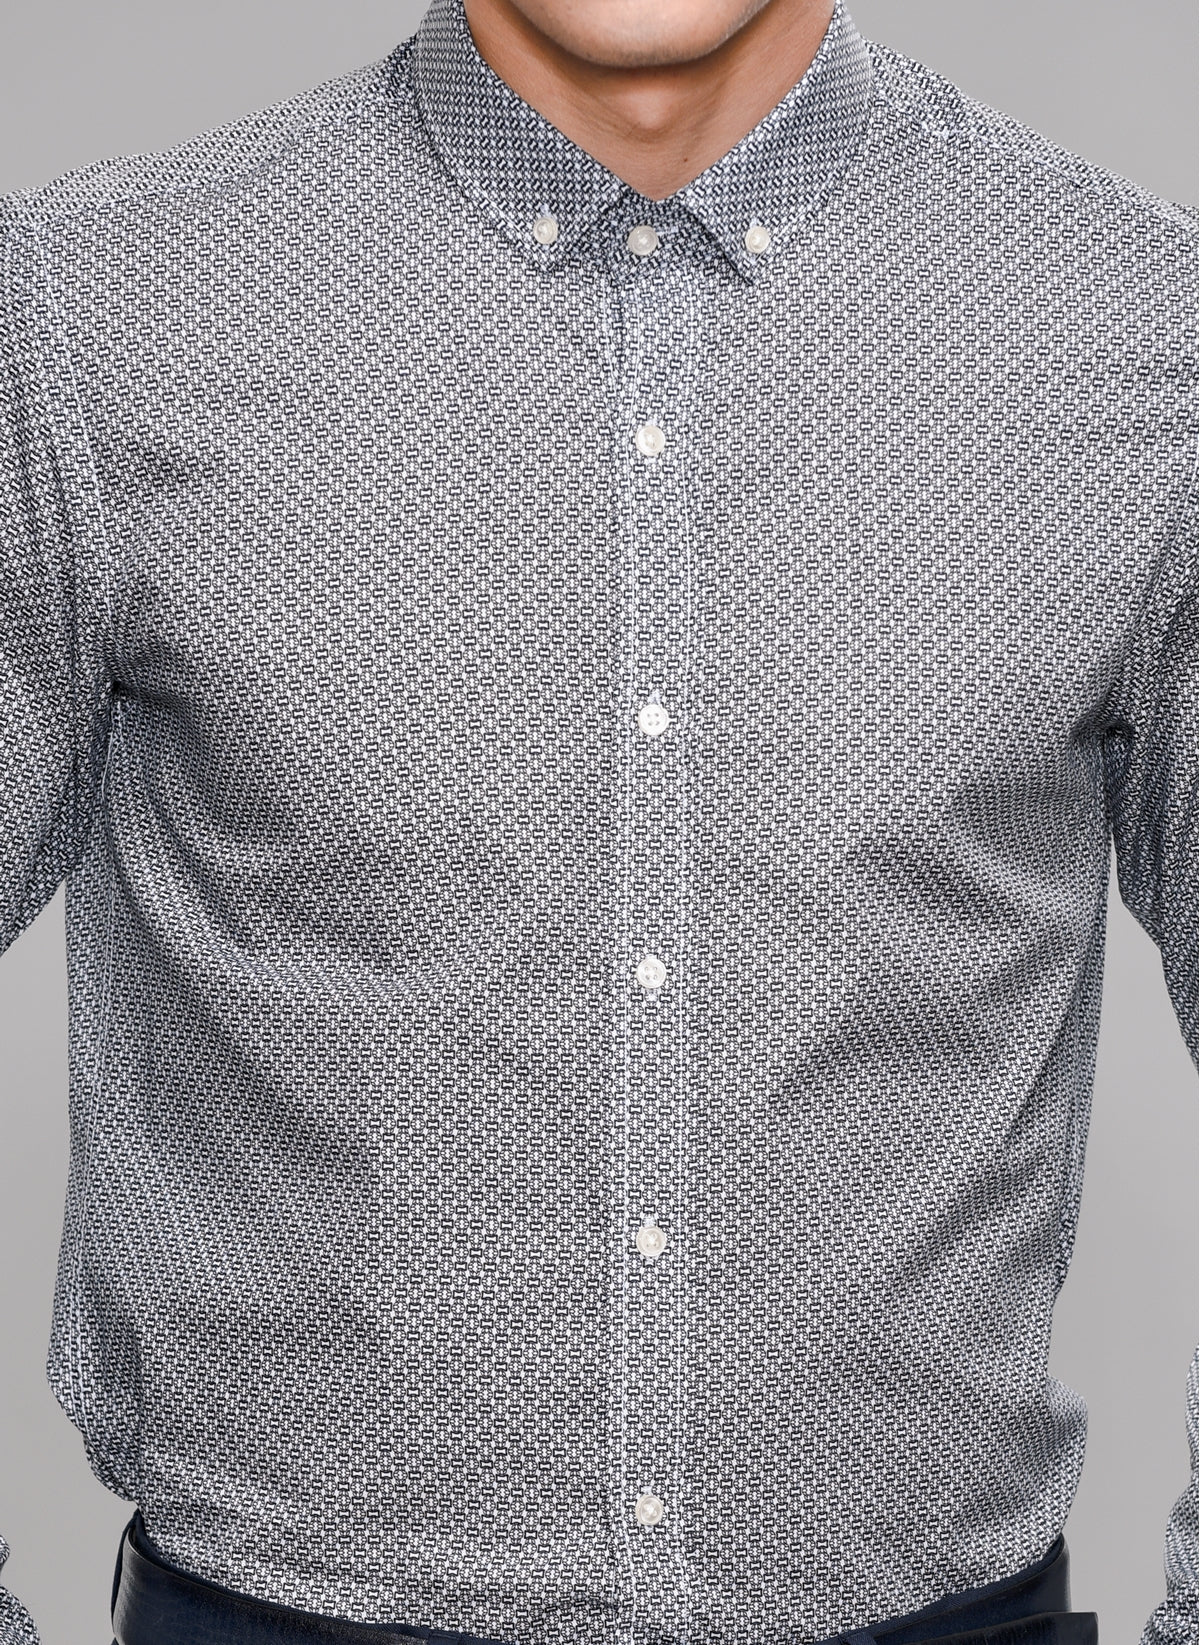 Printed Button-Down Shirt in Black